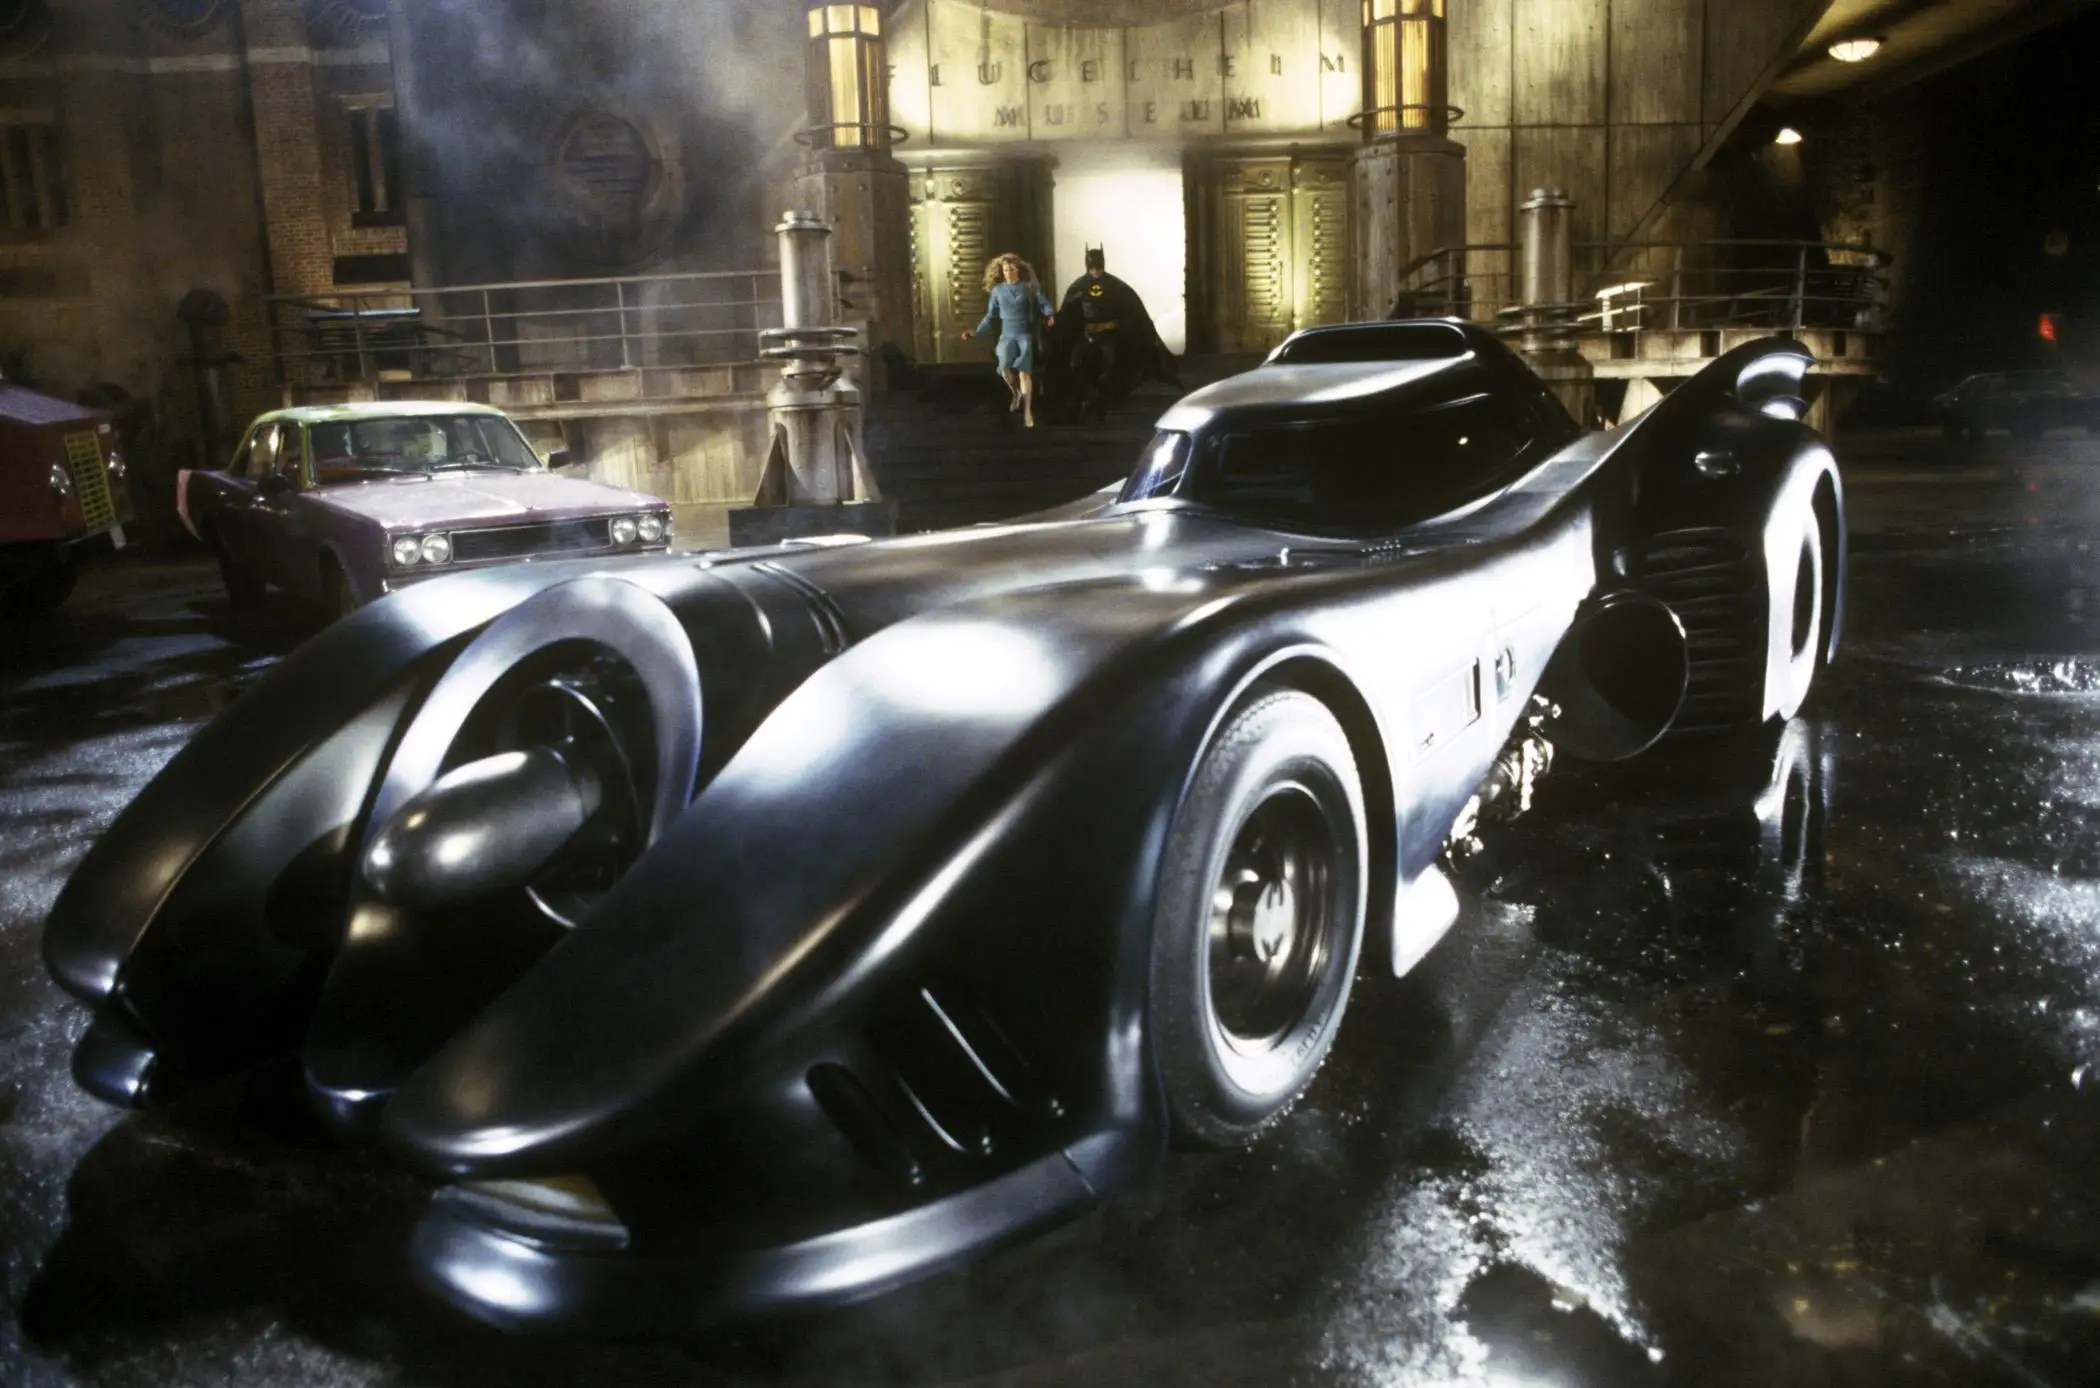 Tim Burton's live-action adaptation of the Batmobile from 1989 is very cool. It's sleek and imposing, and the jet-black exterior and polished finish really give off a sense of wealth, tying together Bruce Wayne and the Batman persona.